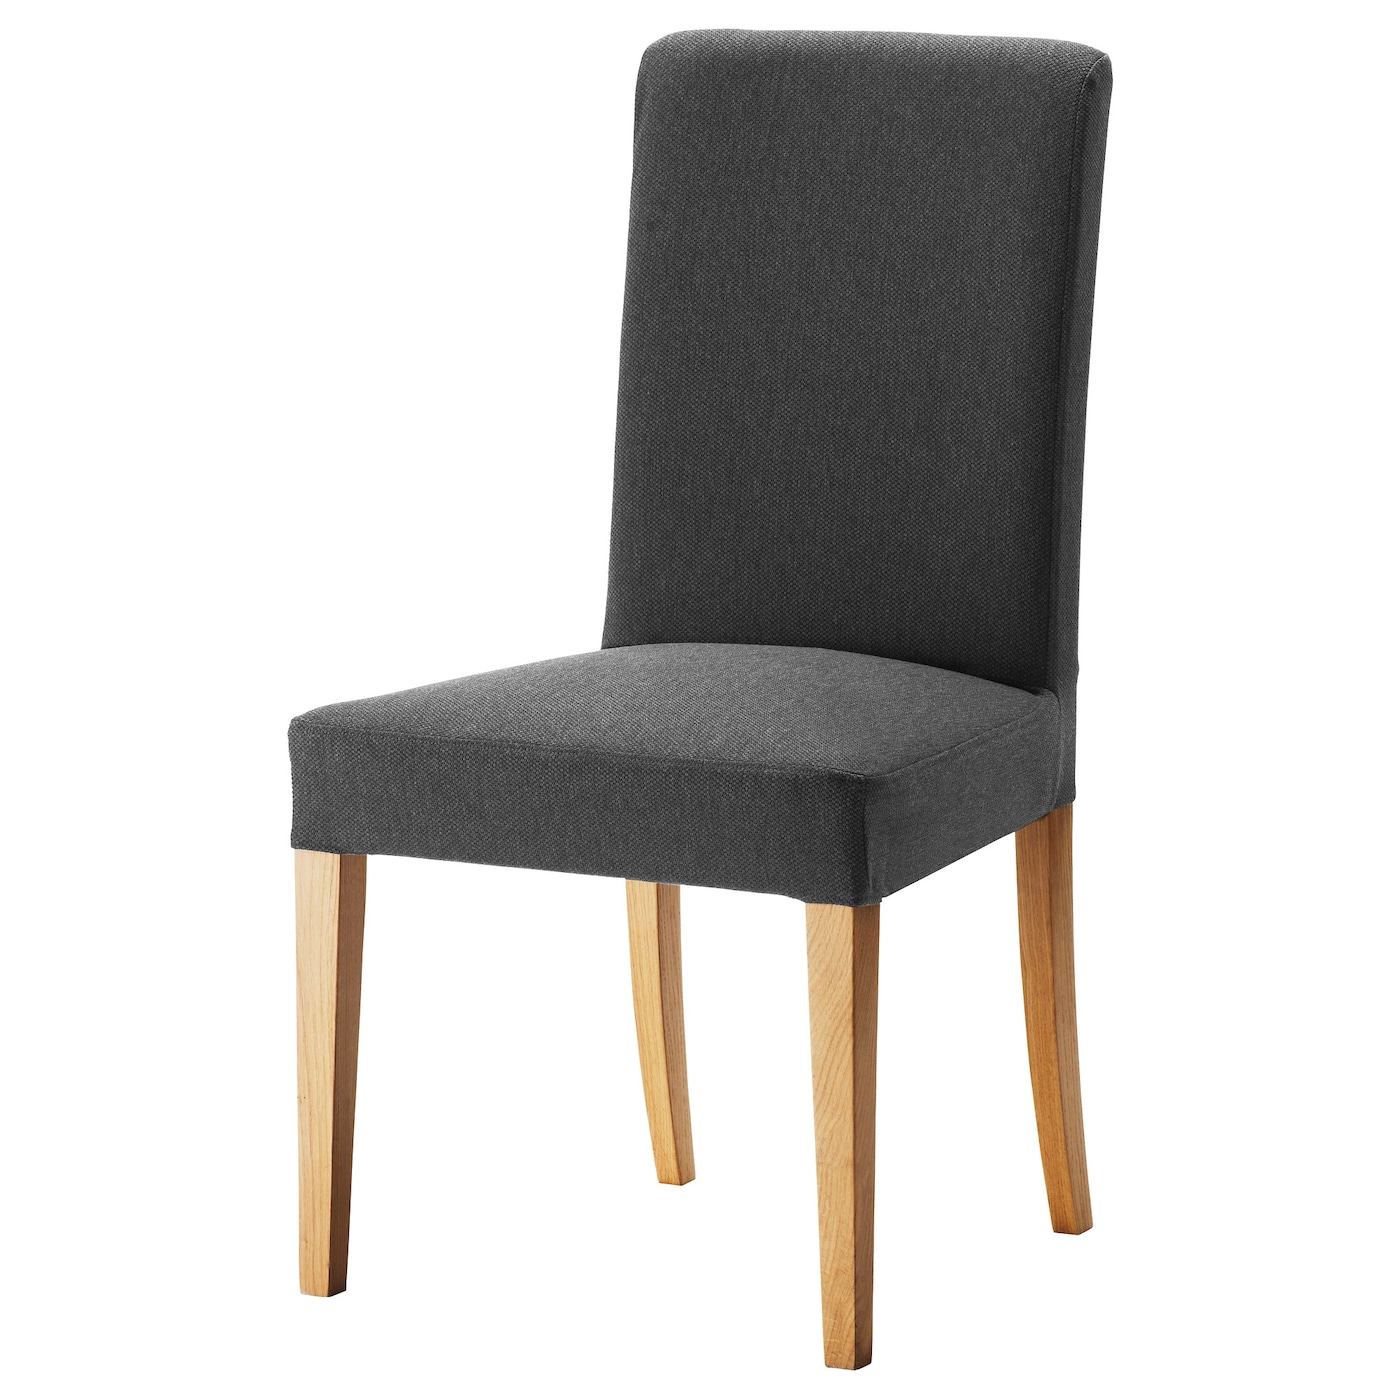 IKEA HENRIKSDAL Chair You Sit Comfortably Thanks To The High Back And . Full resolution‎  portraiture, nominally Width 2000 Height 2000 pixels, portraiture with #A26F29.